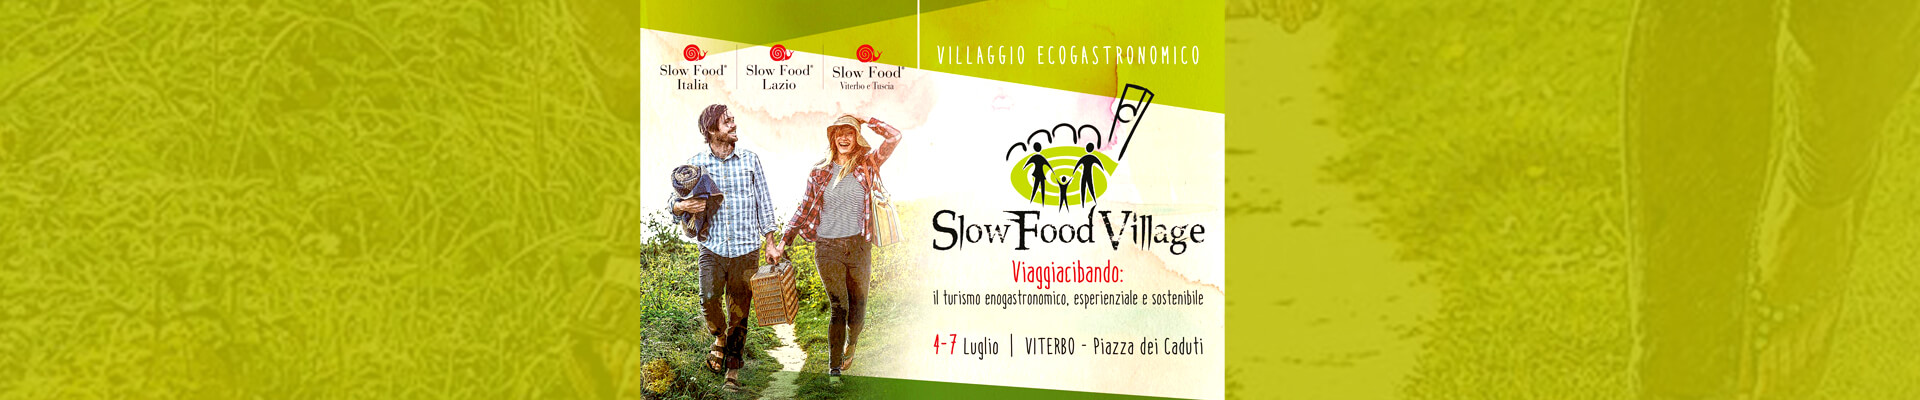 Il Meleto - Evento Slow Food Village